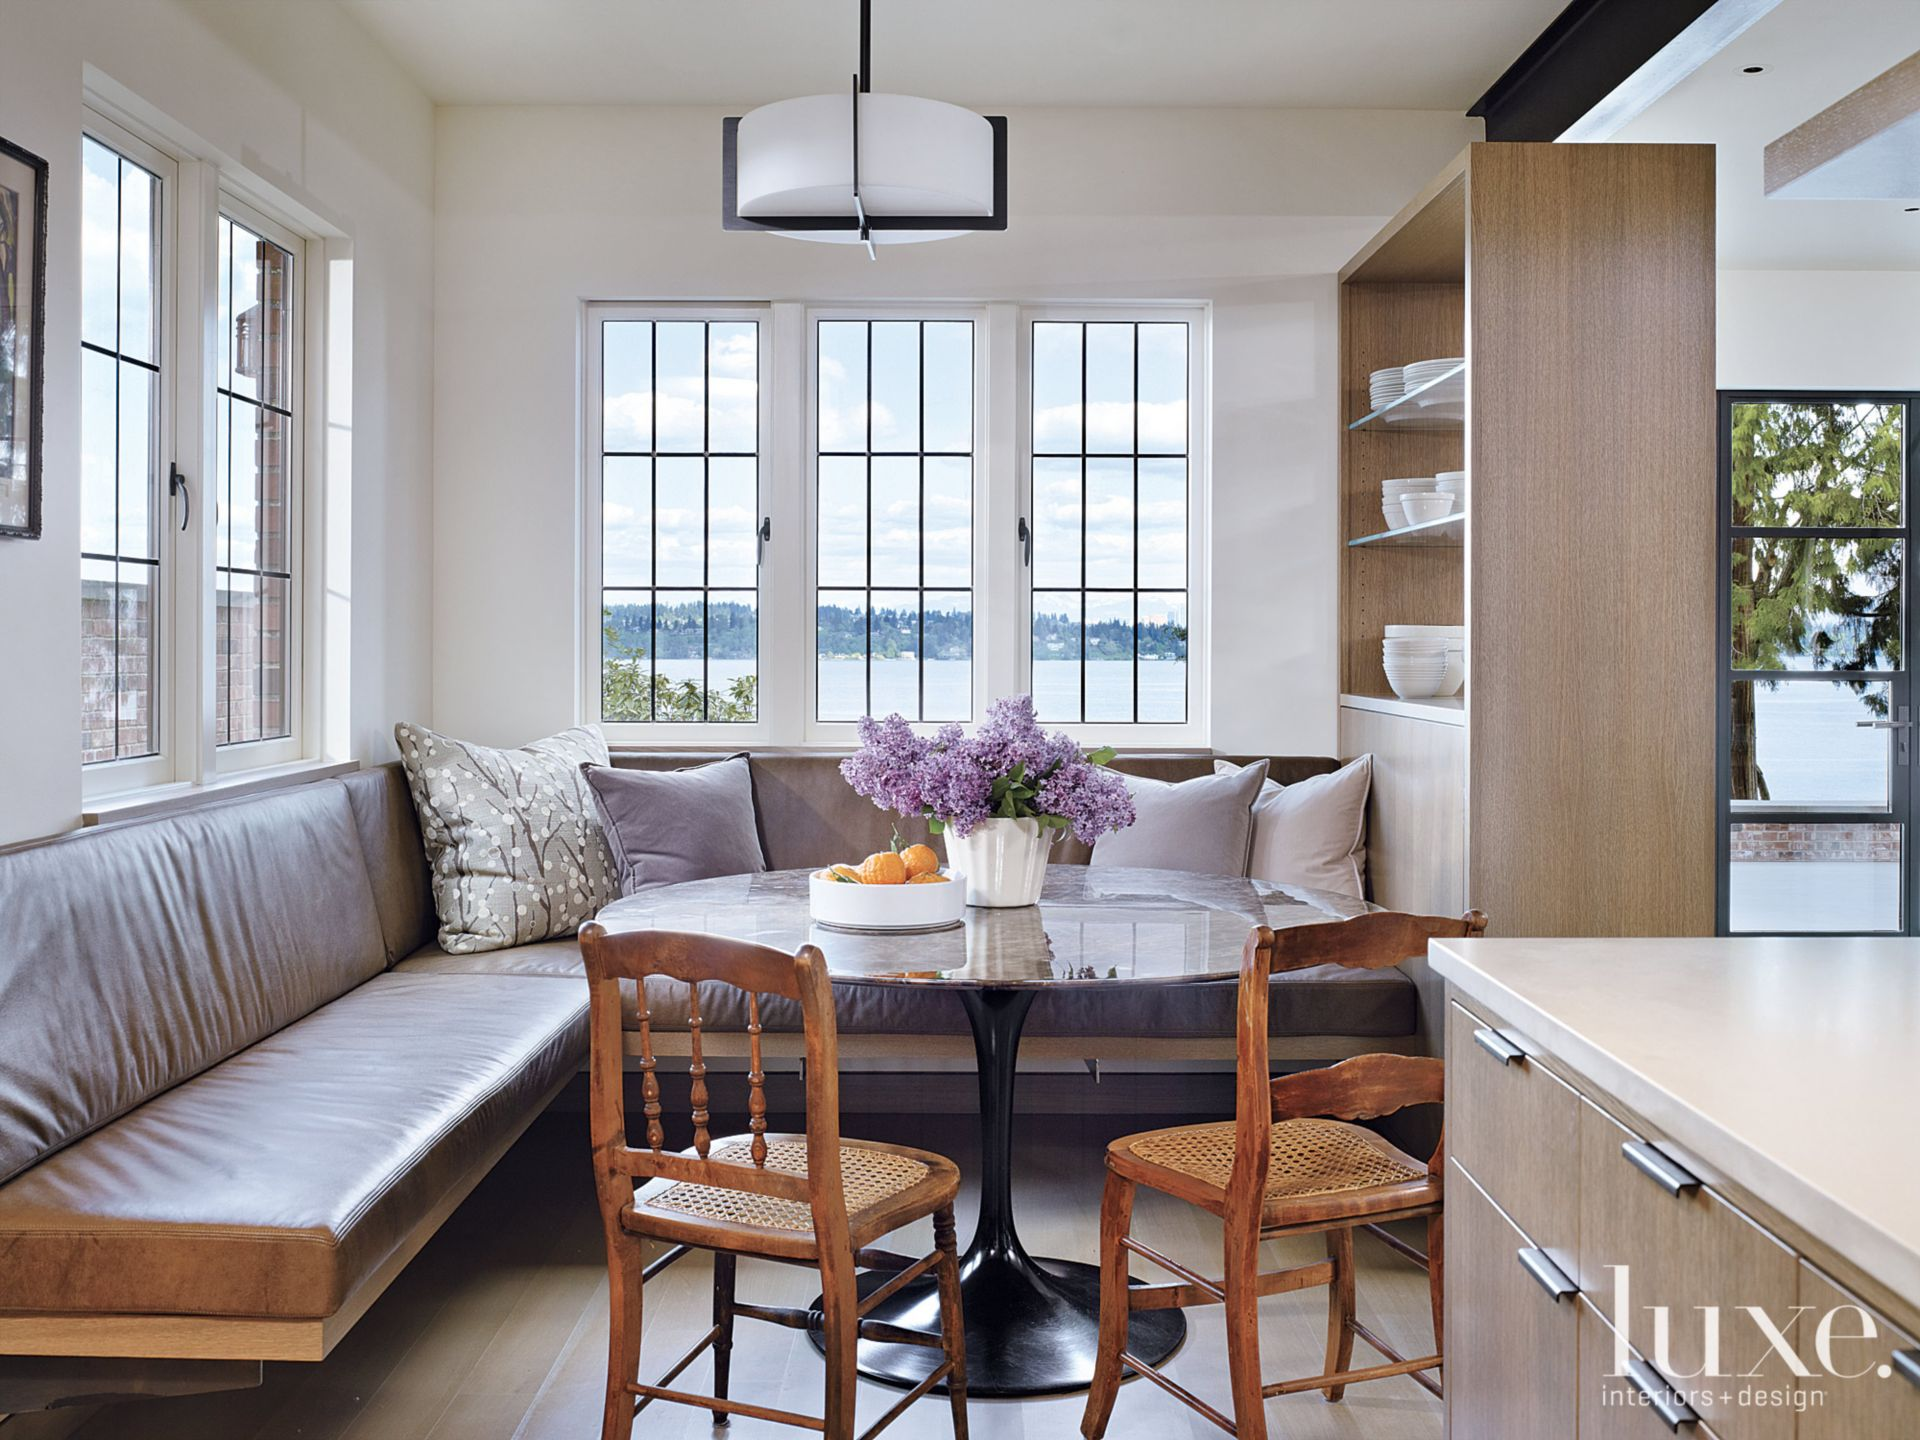 Contemporary White Breakfast Nook with Banquette Seating